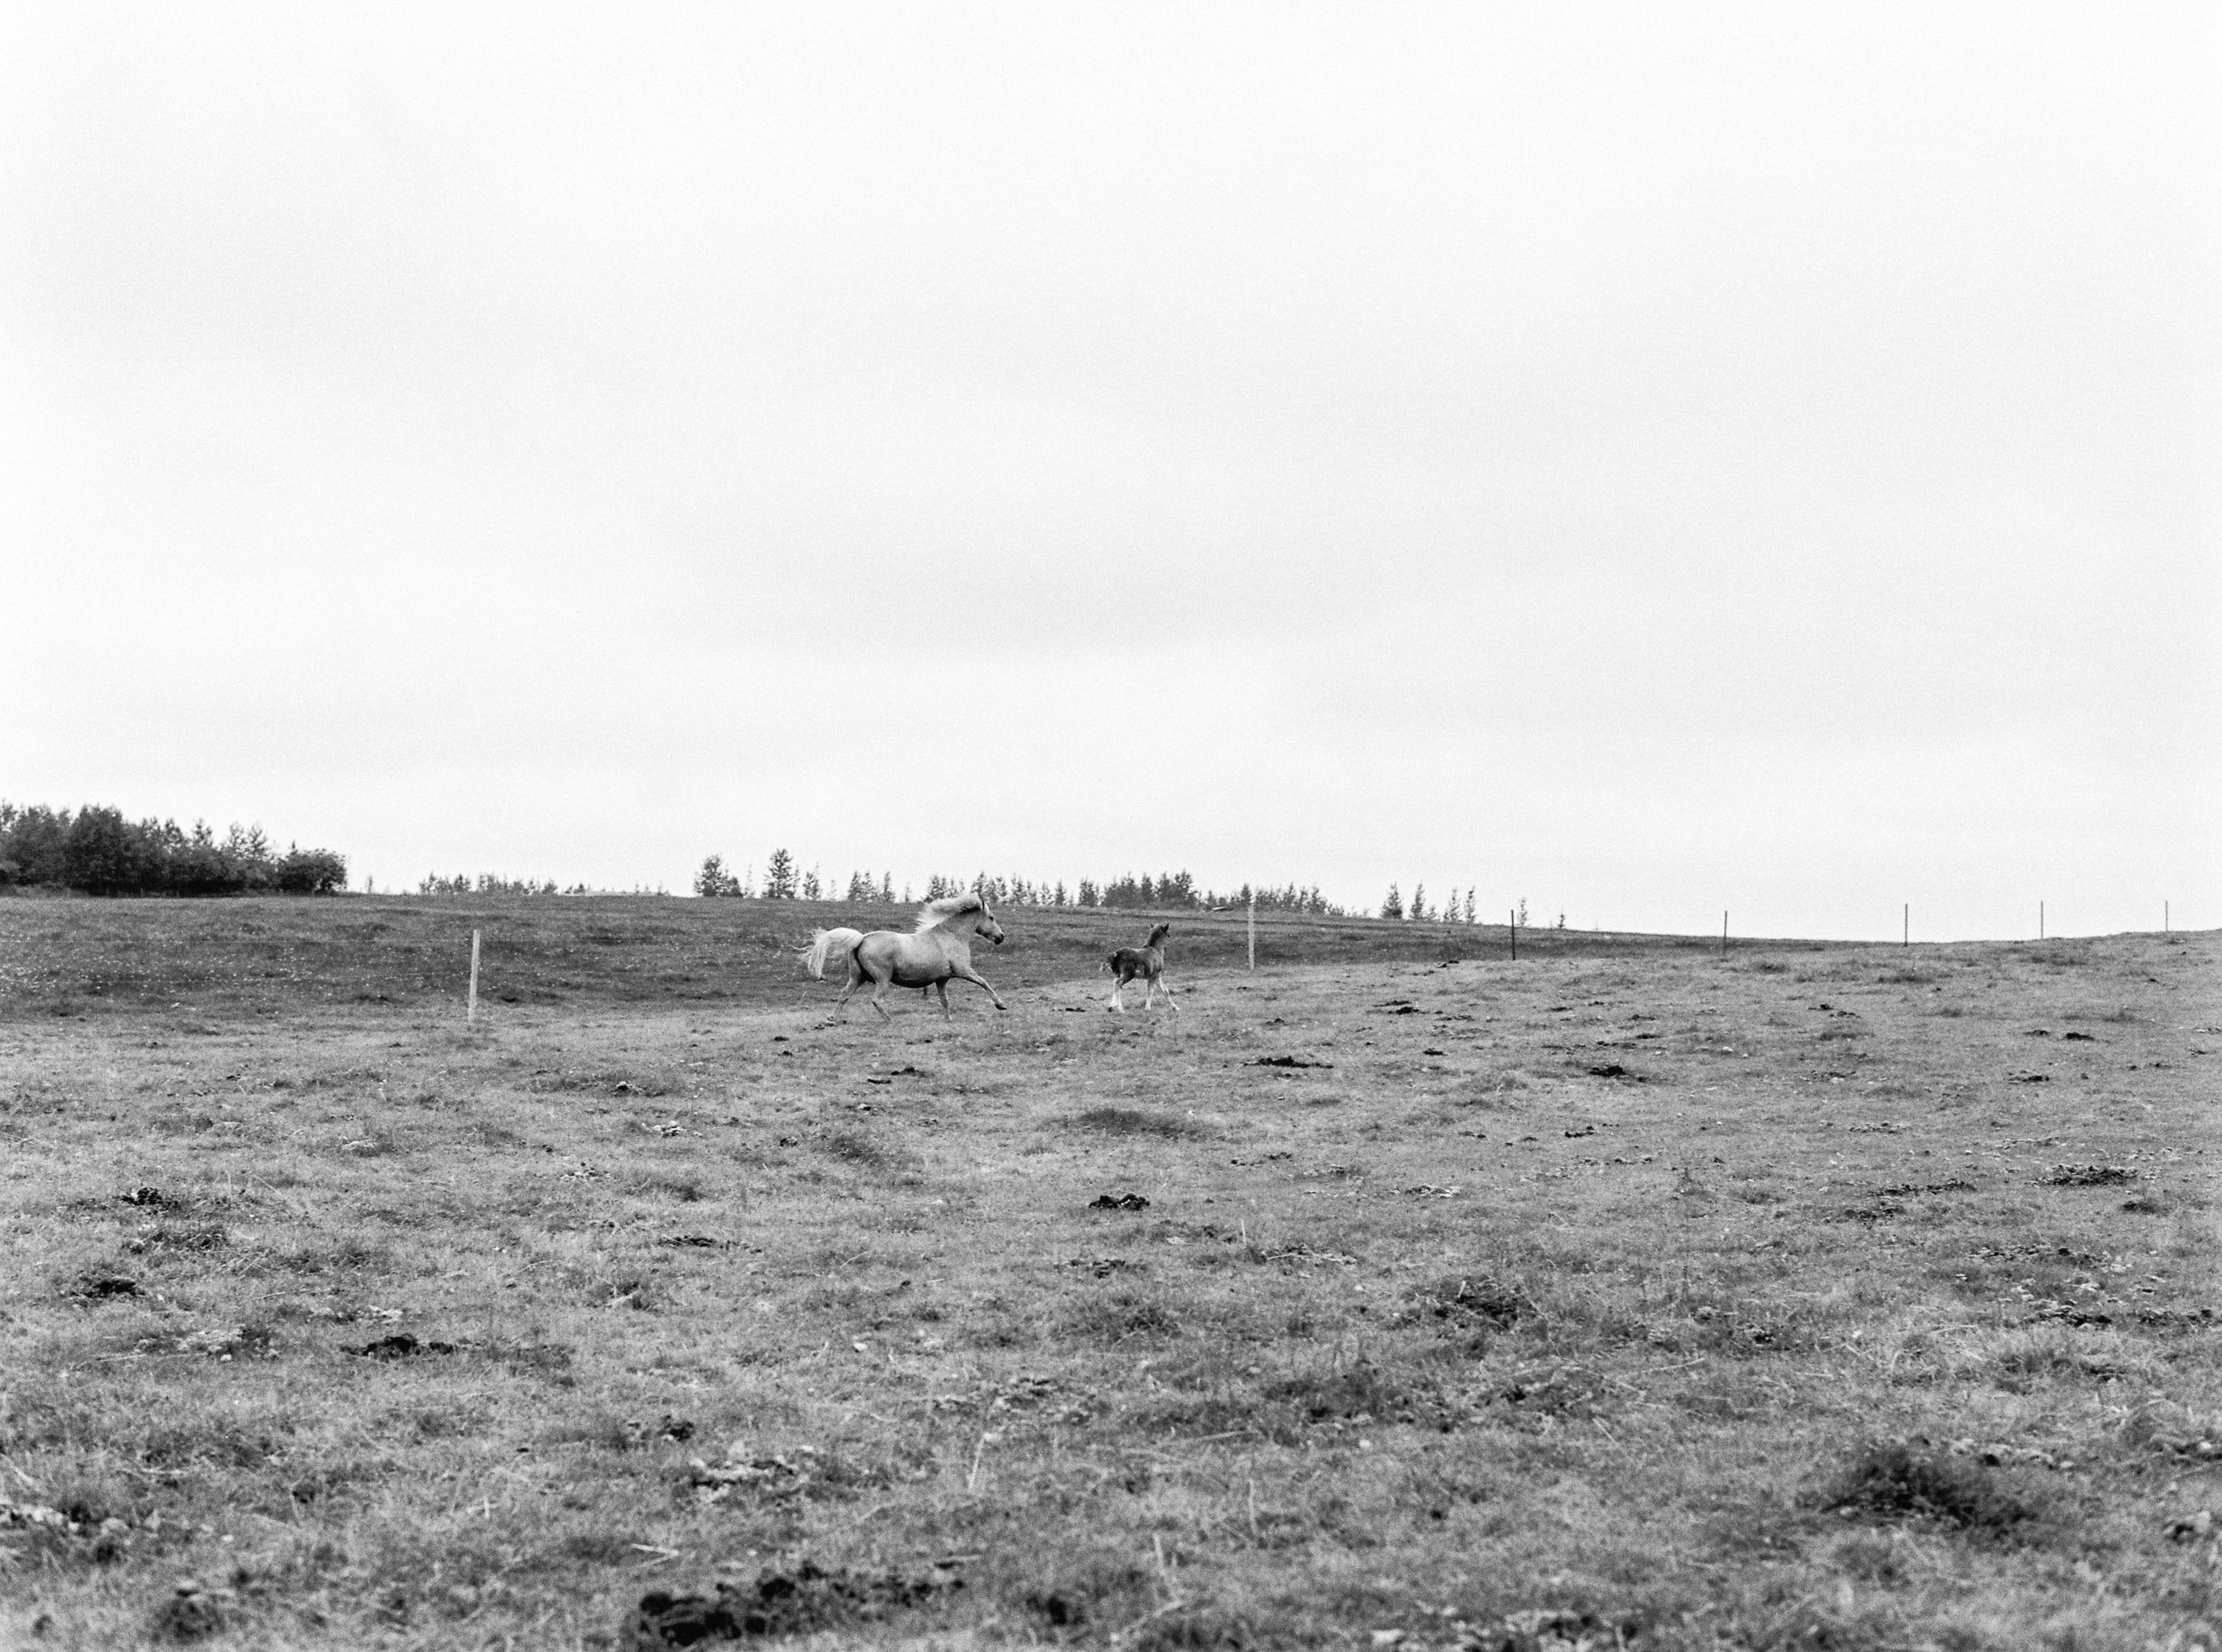 Horses in Iceland by Kristin Sweeting now on Cottage Hill79.jpg